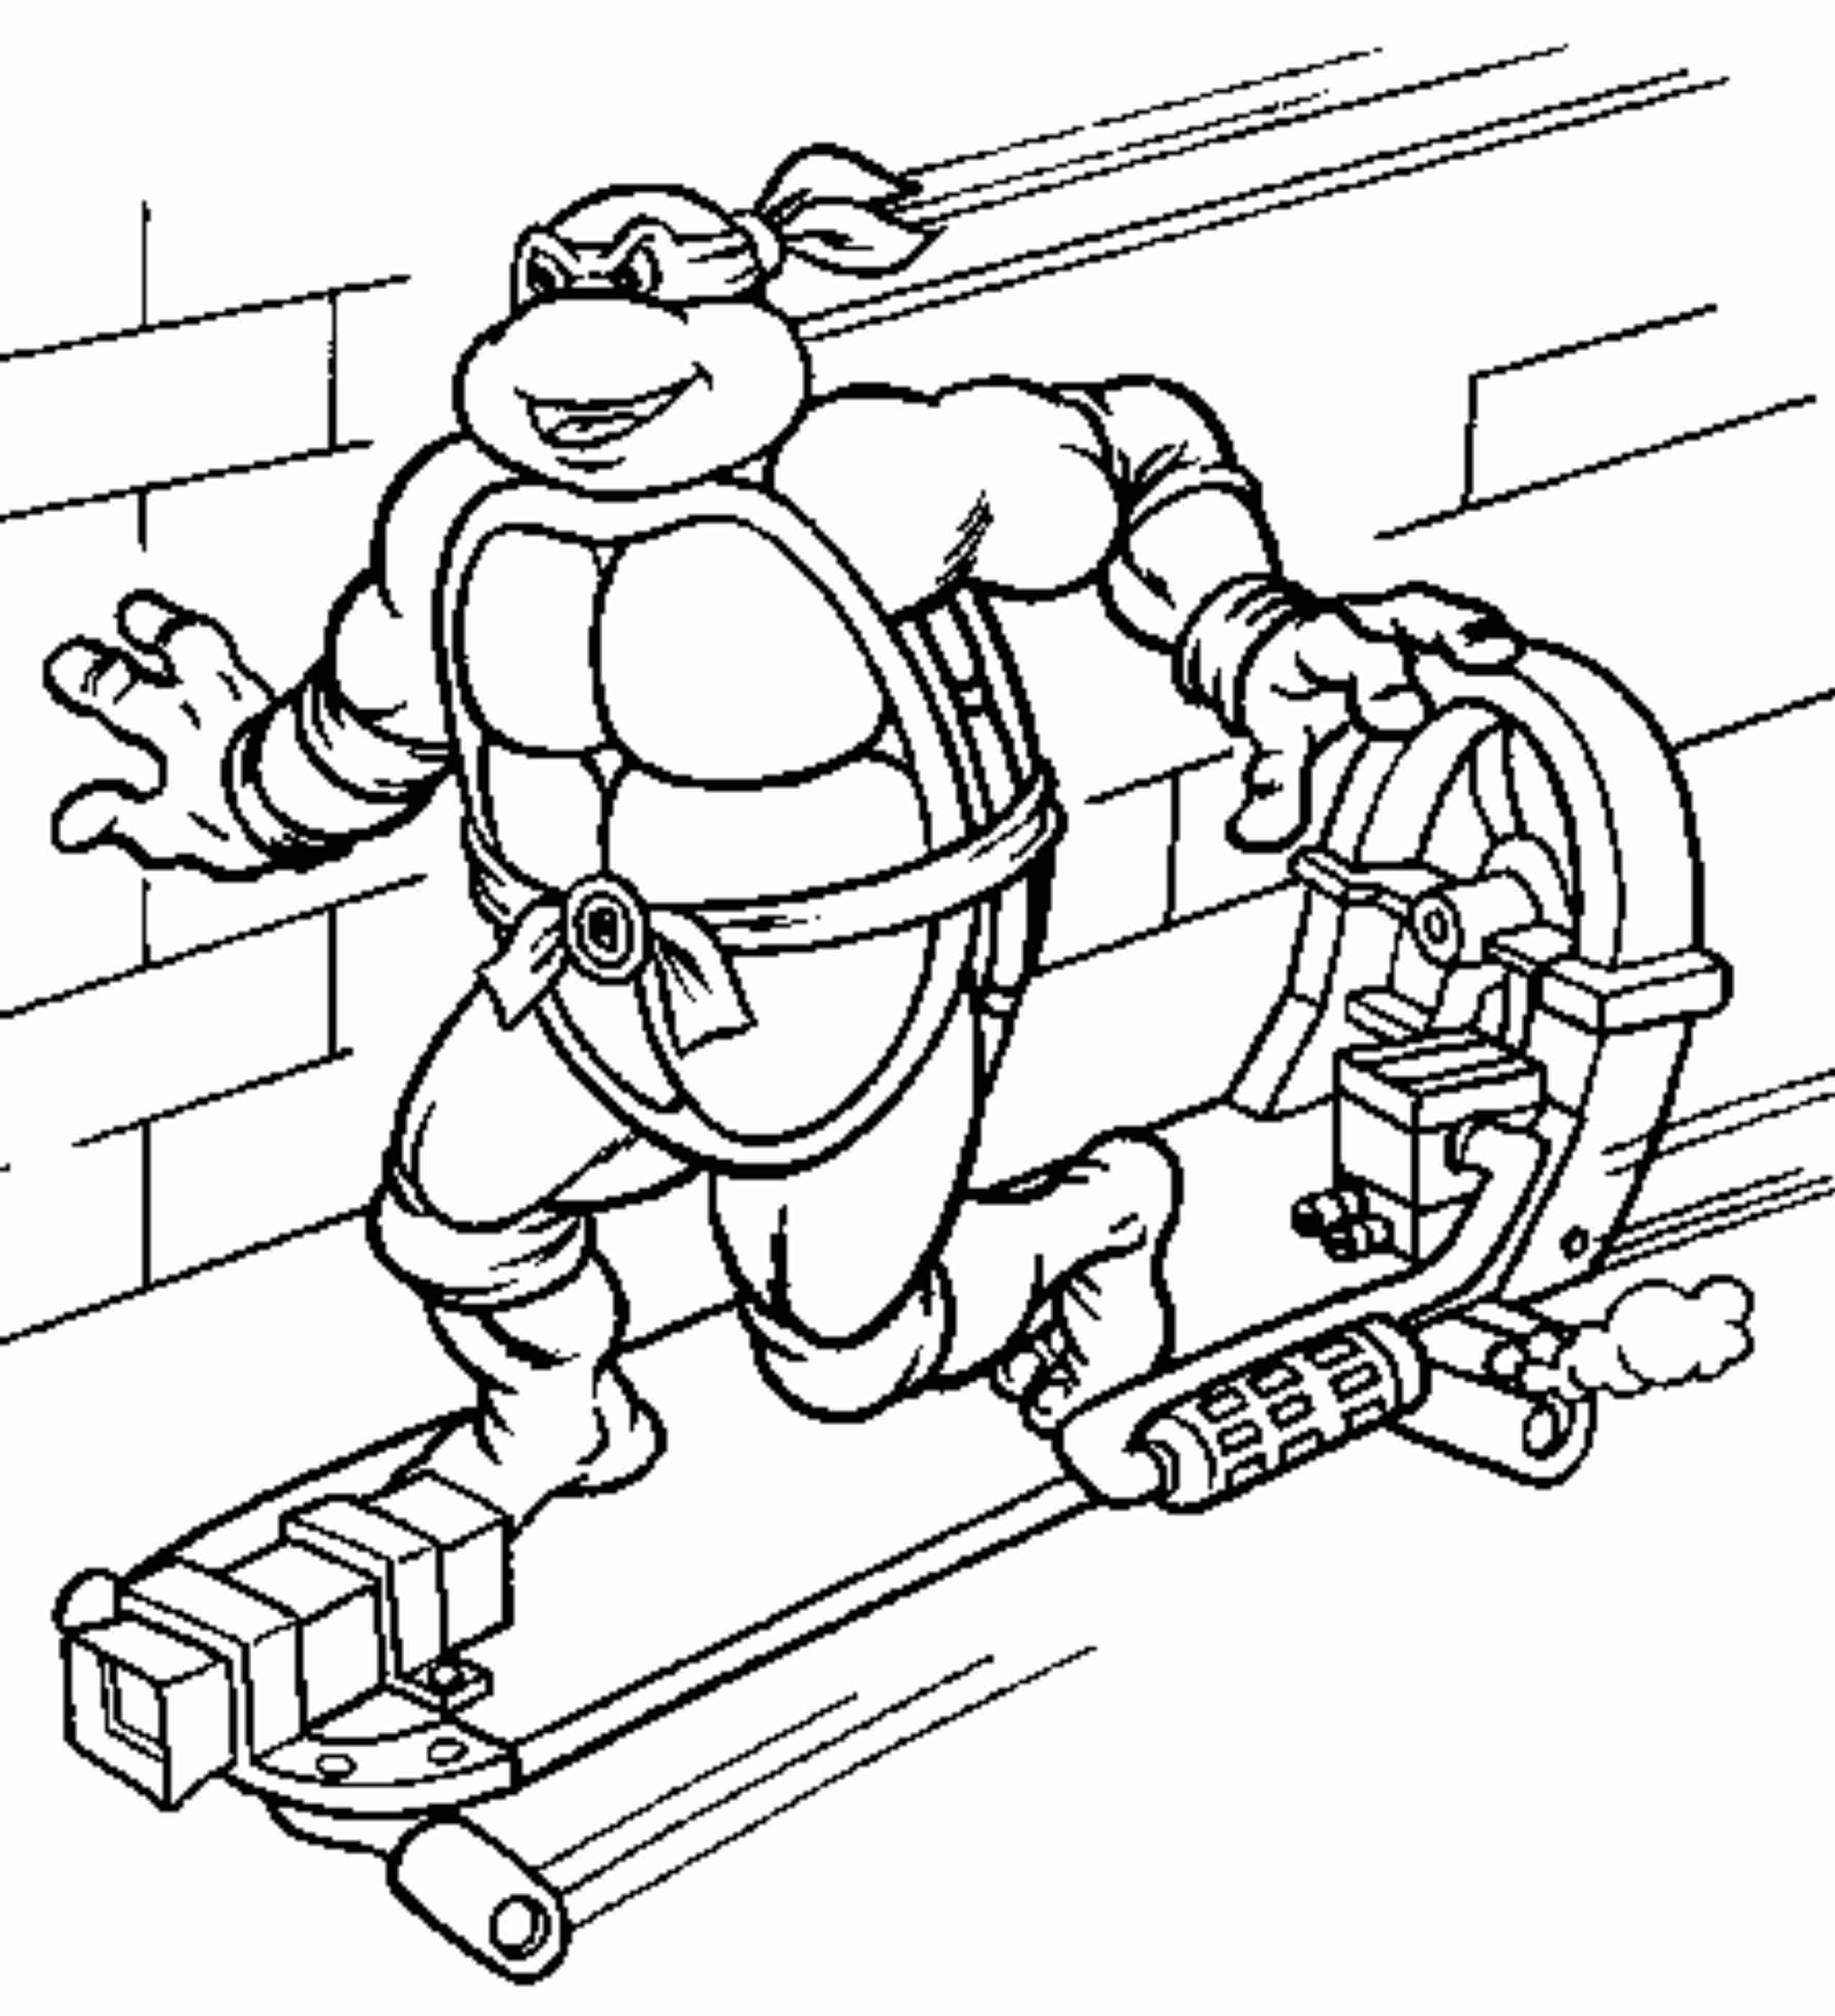 ninja turtle colour in coloring pages of ninja turtles coloring home in colour ninja turtle